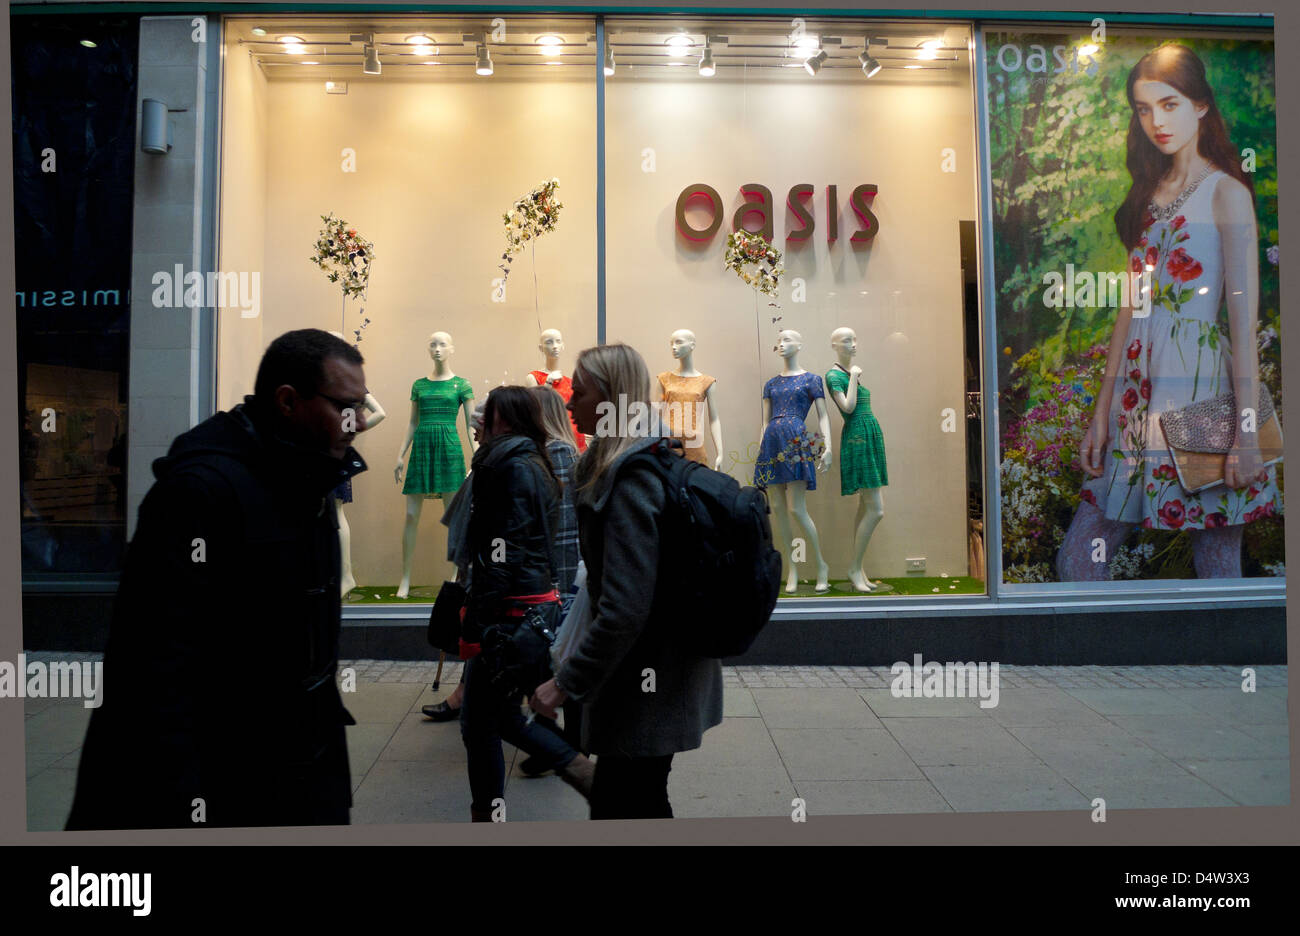 Oasis Adult Superstore